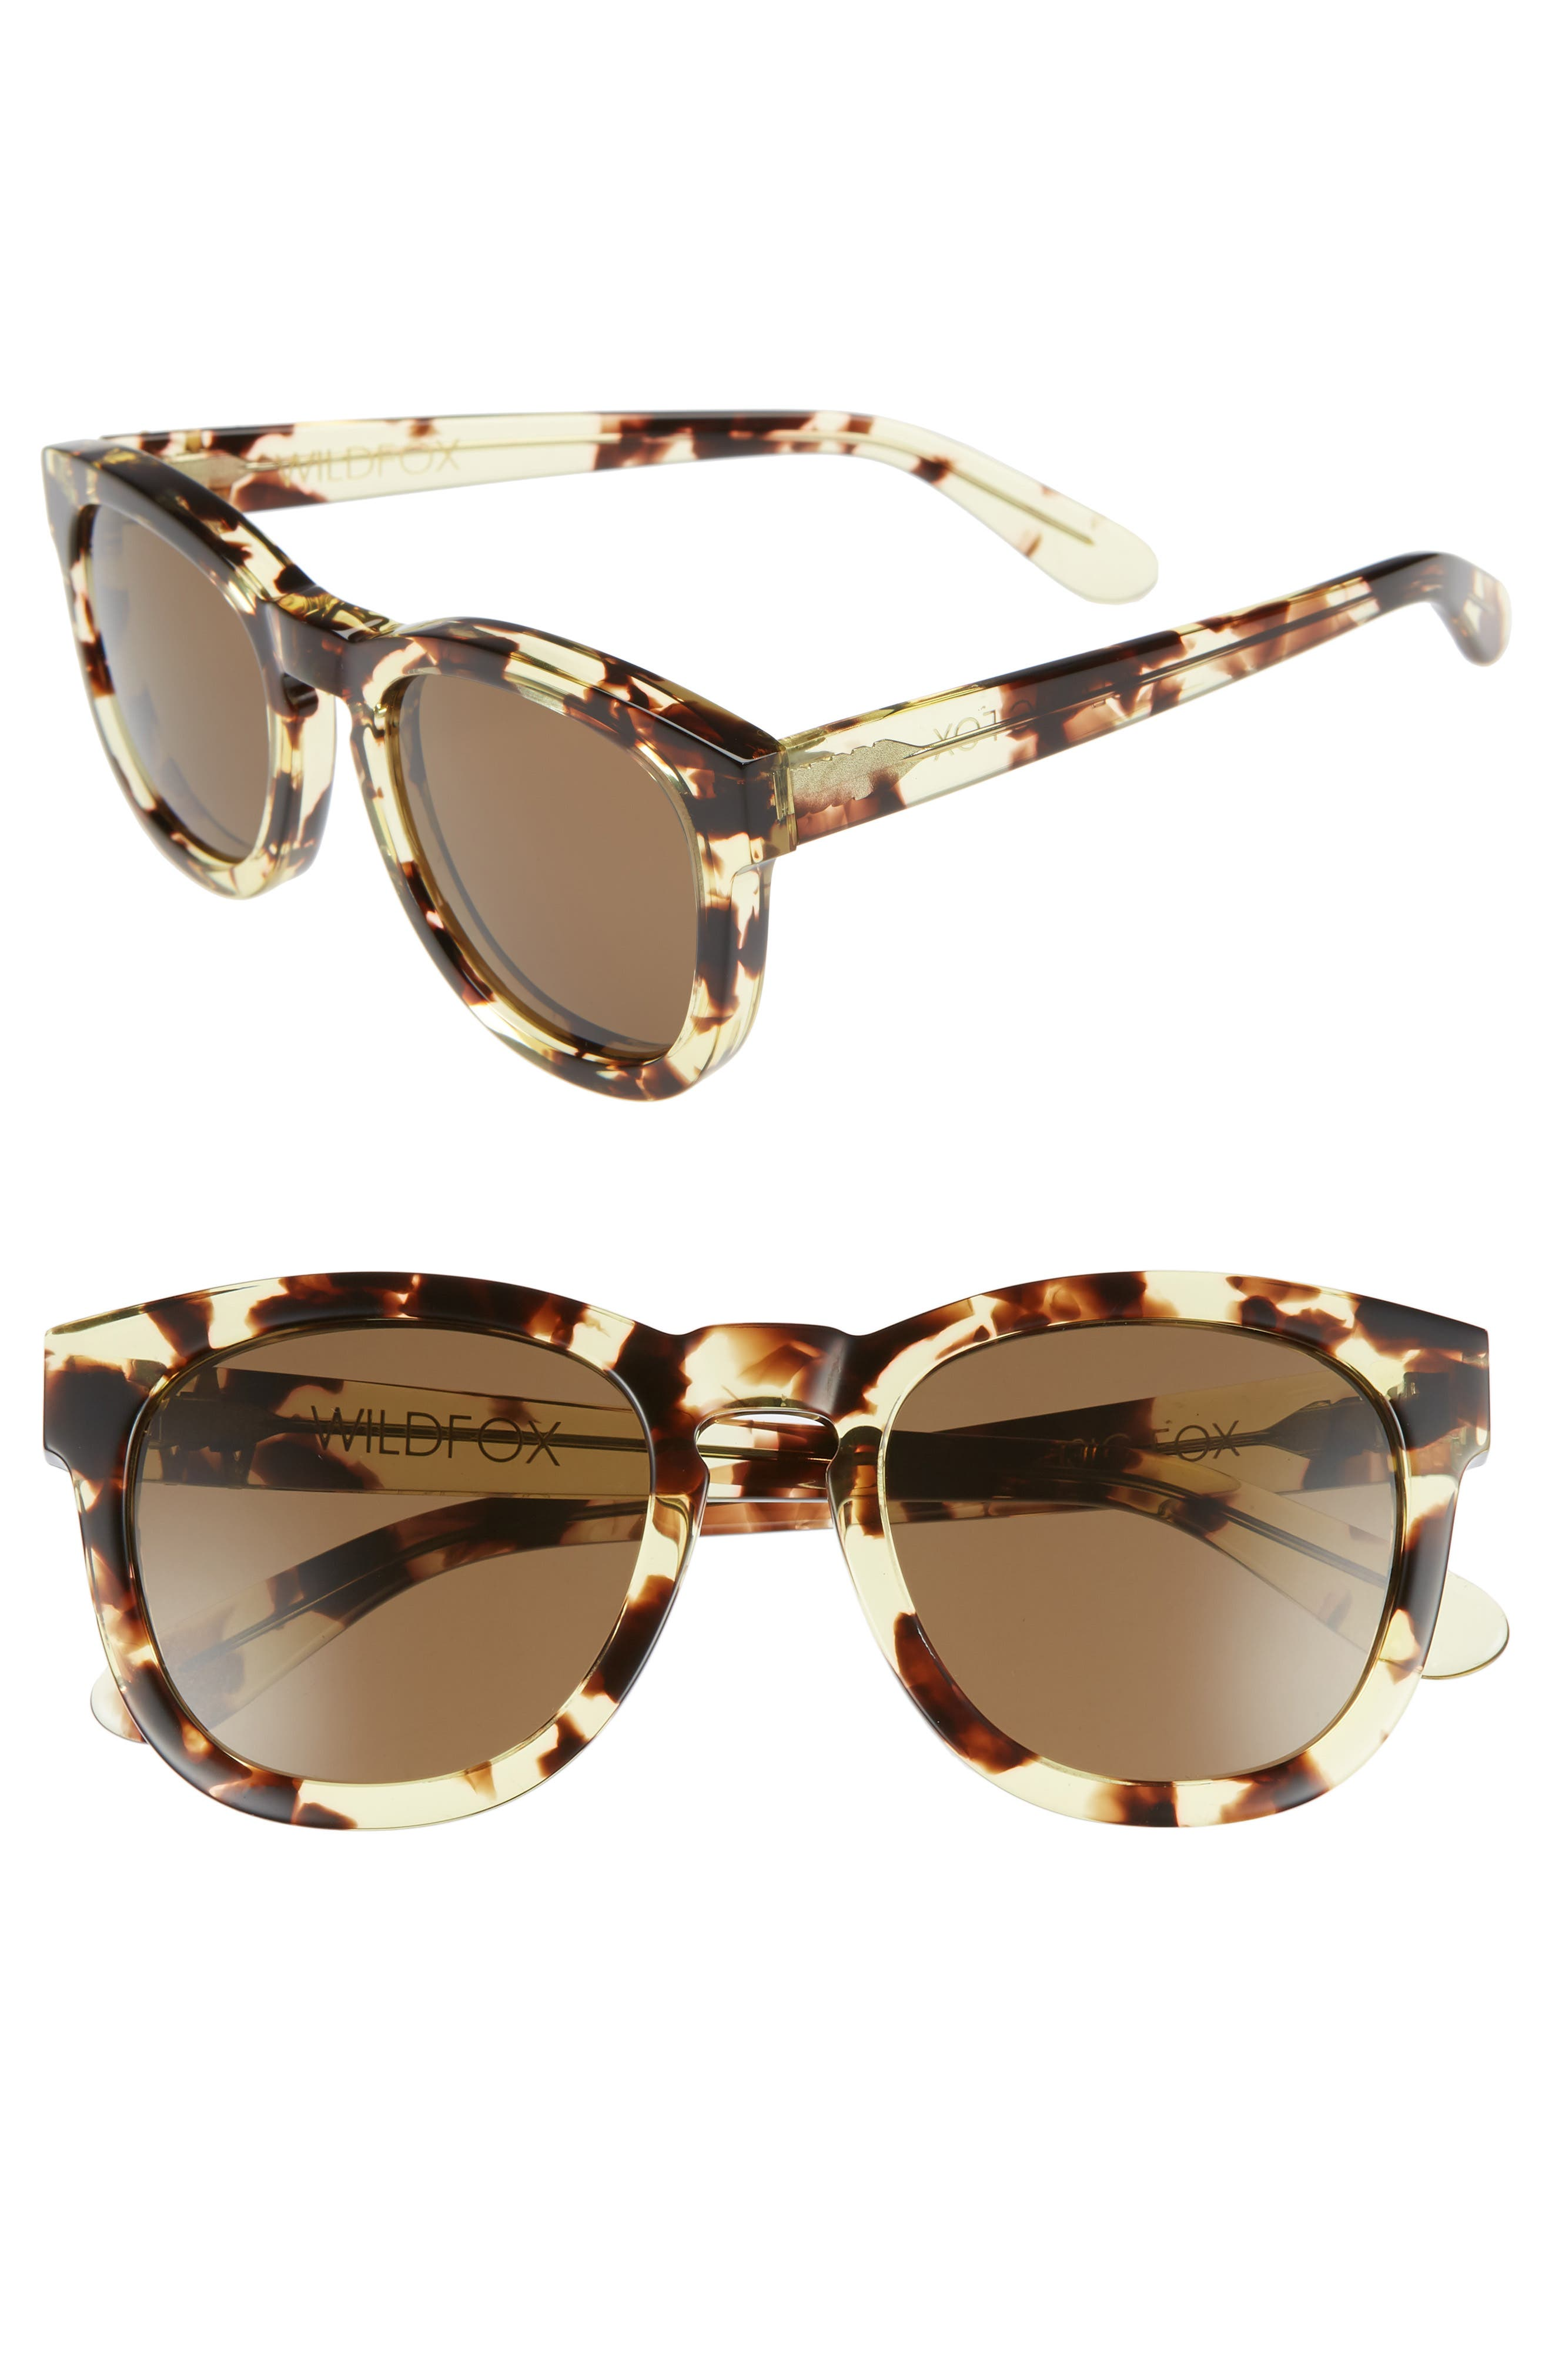 'Classic Fox' 50mm Retro Sunglasses,                             Main thumbnail 1, color,                             Amber Tortoise/ Brown Solid